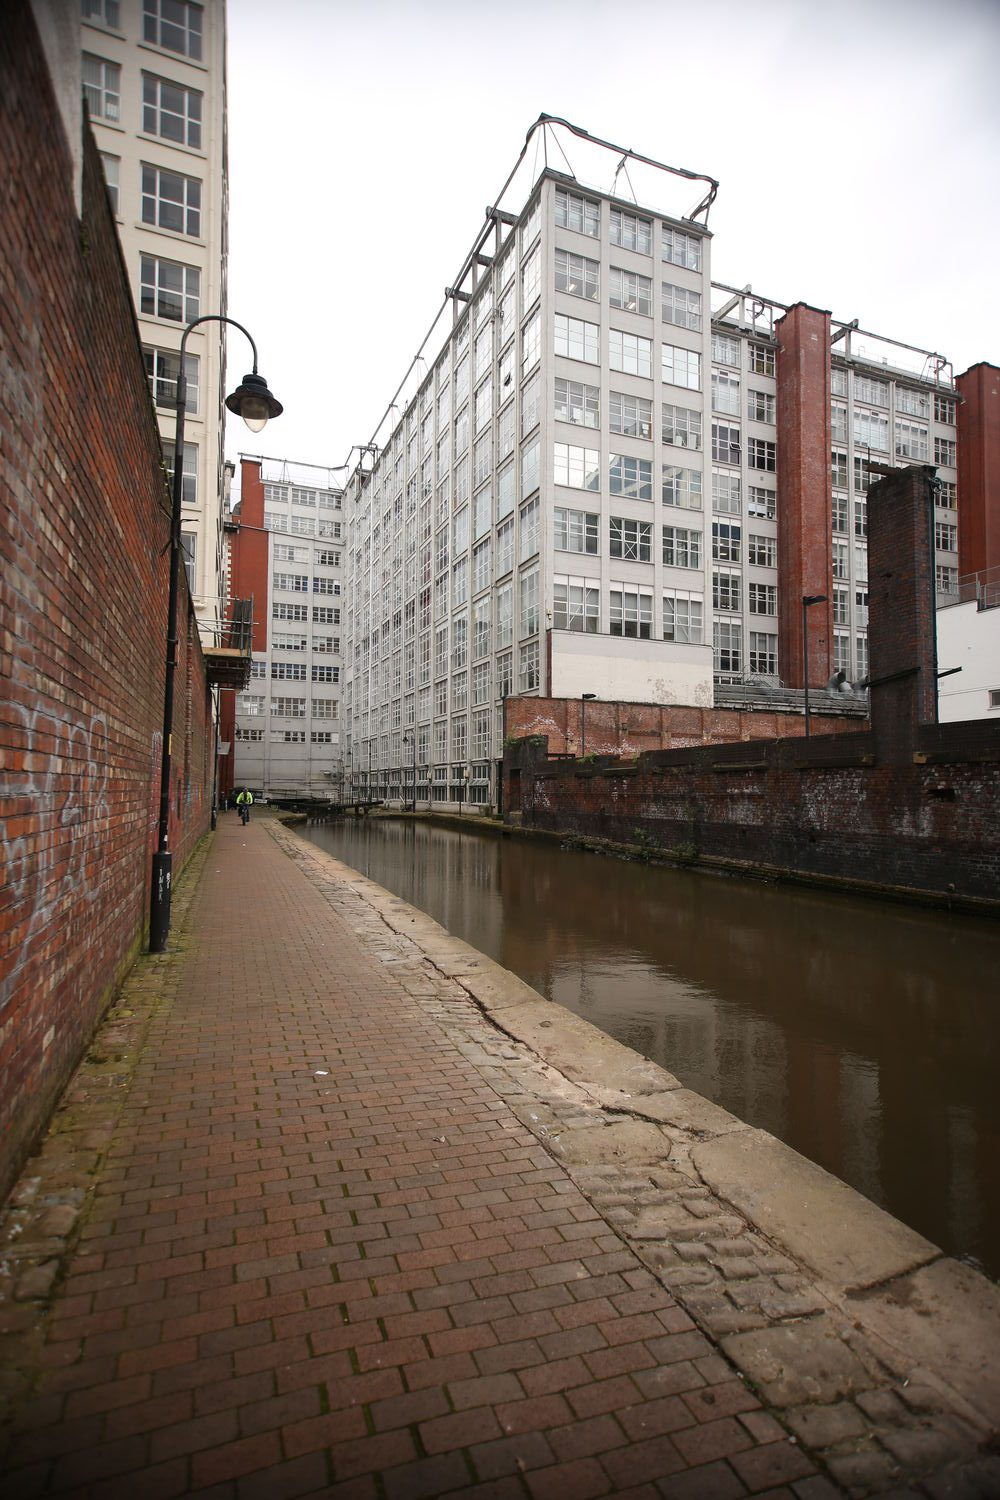 MANCHESTER canal